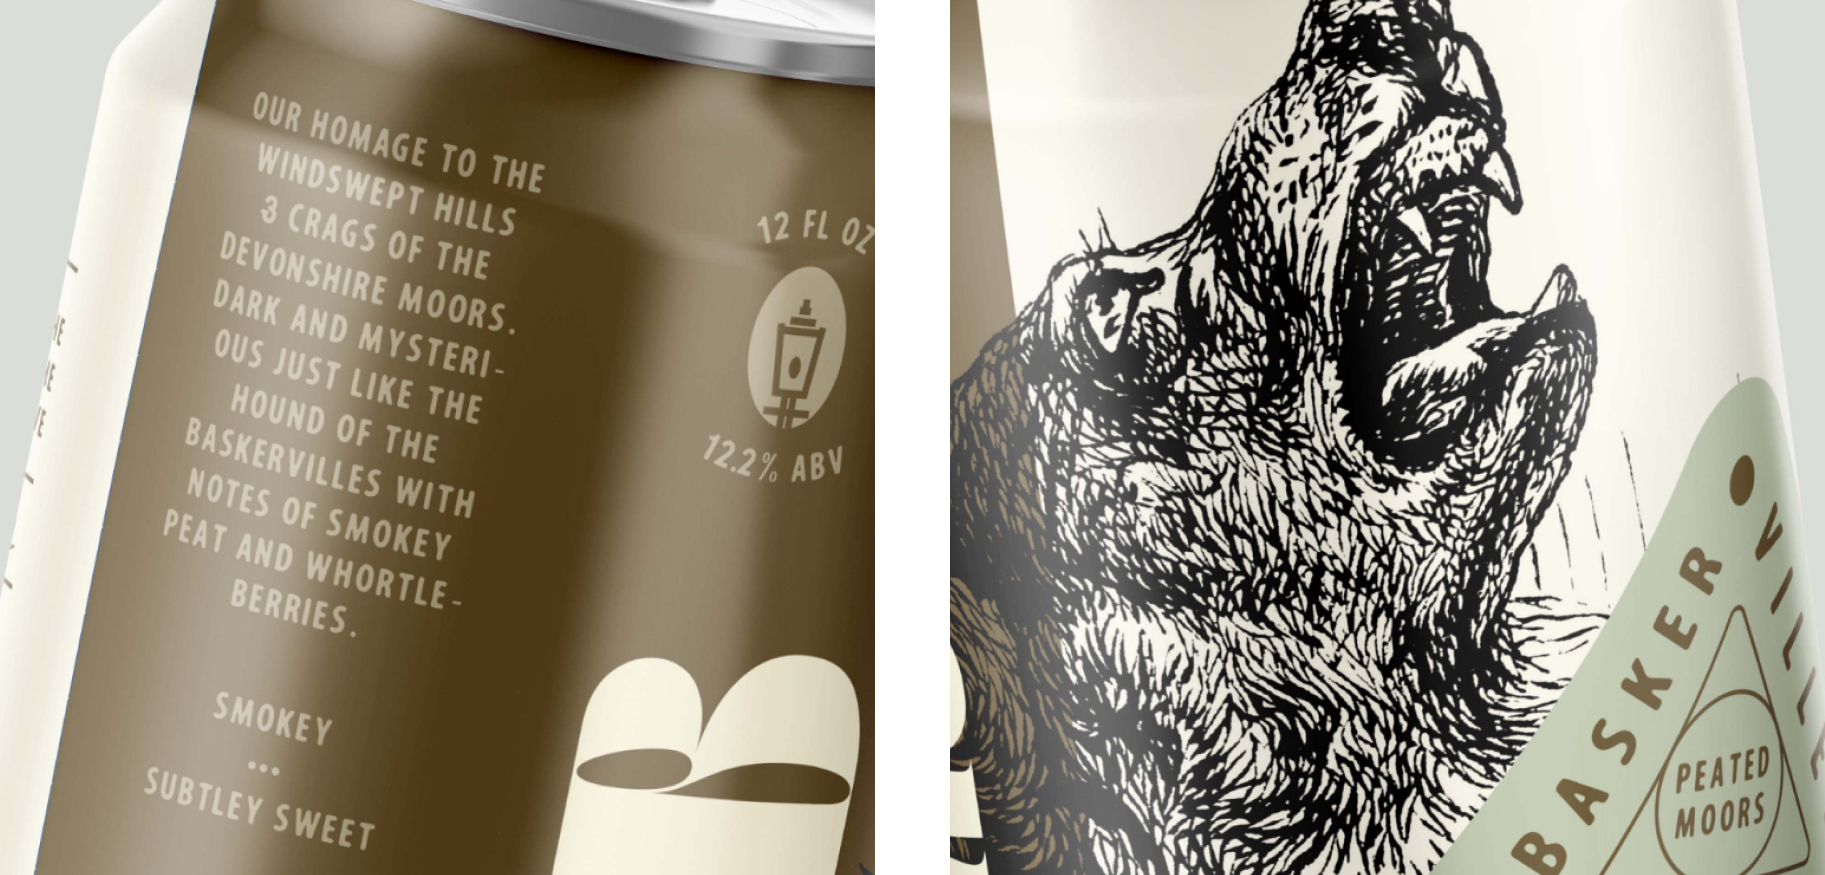 Details of the can design